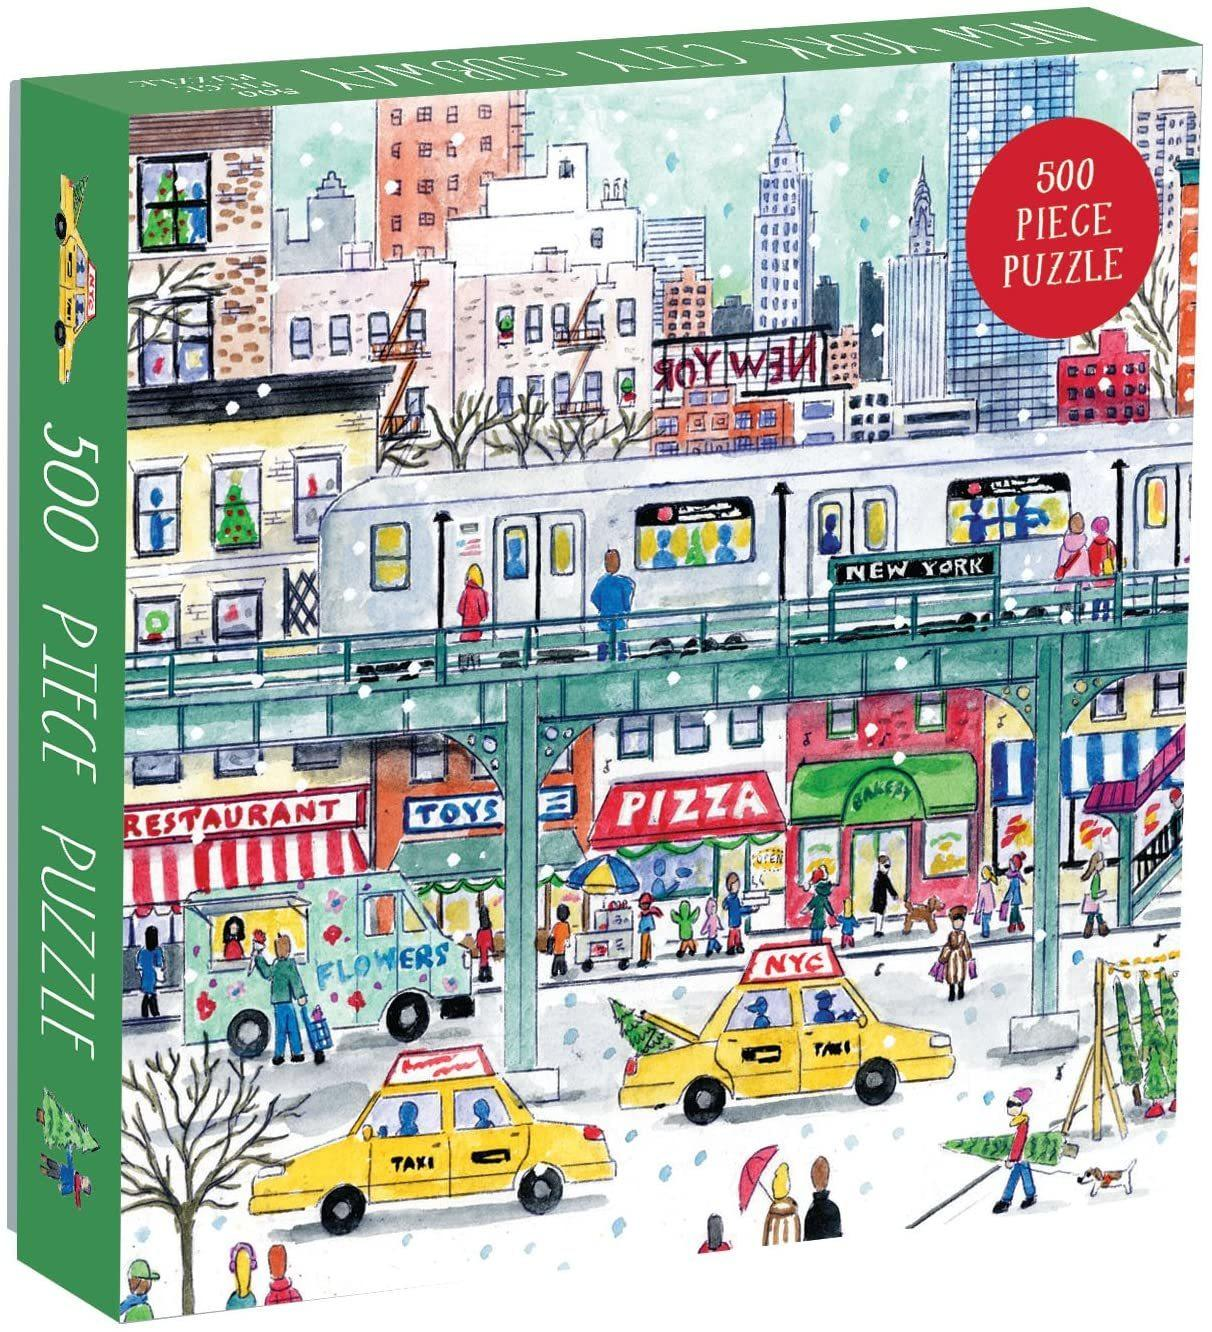 Michael Storrings New York City Subway Jigsaw Puzzle(500pieces)